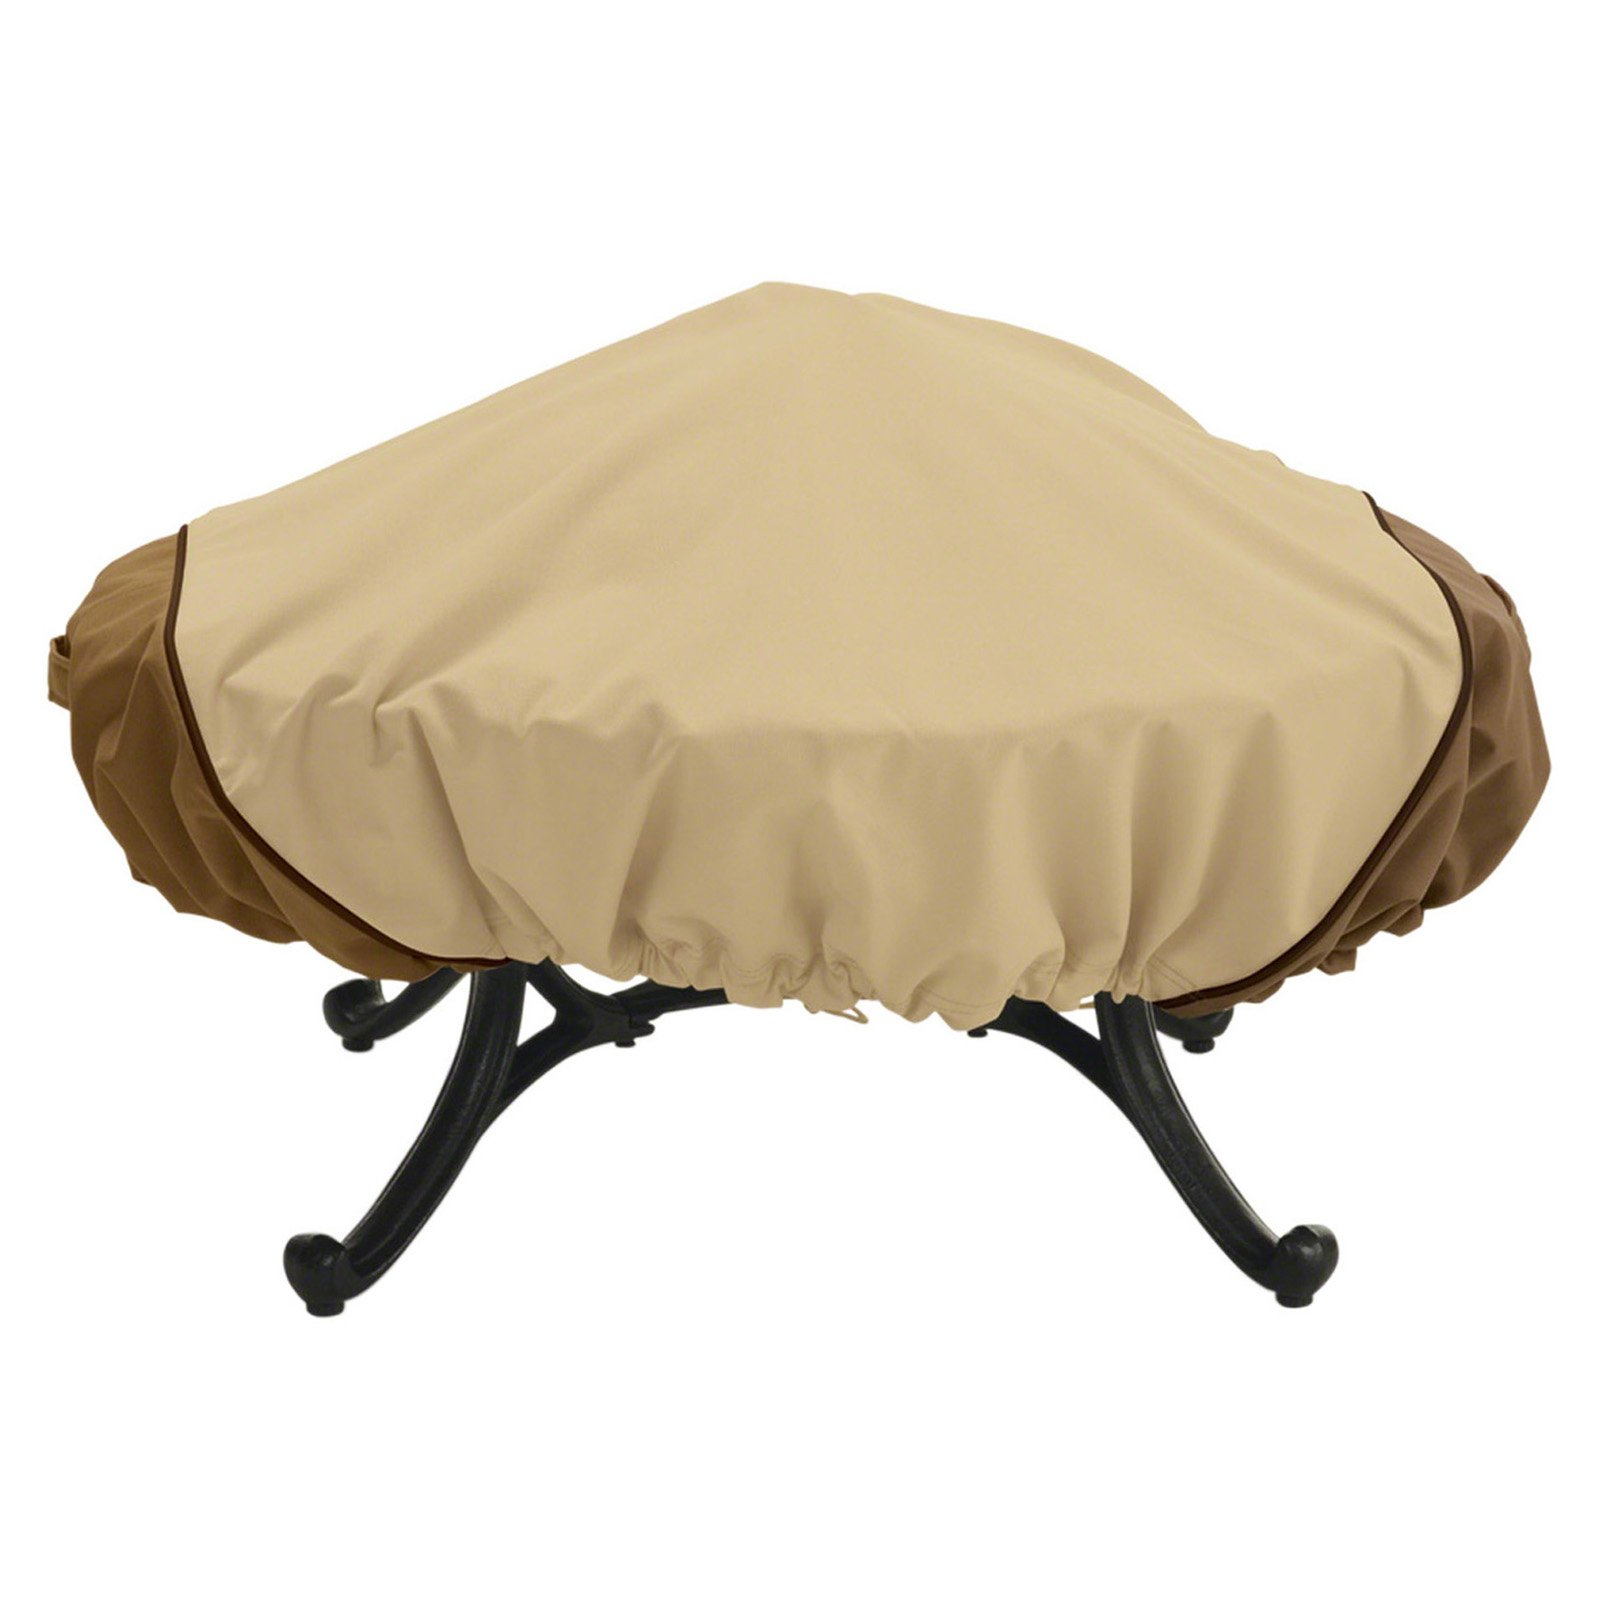 Classic Accessories Veranda Fire Pit Patio Storage Cover Round